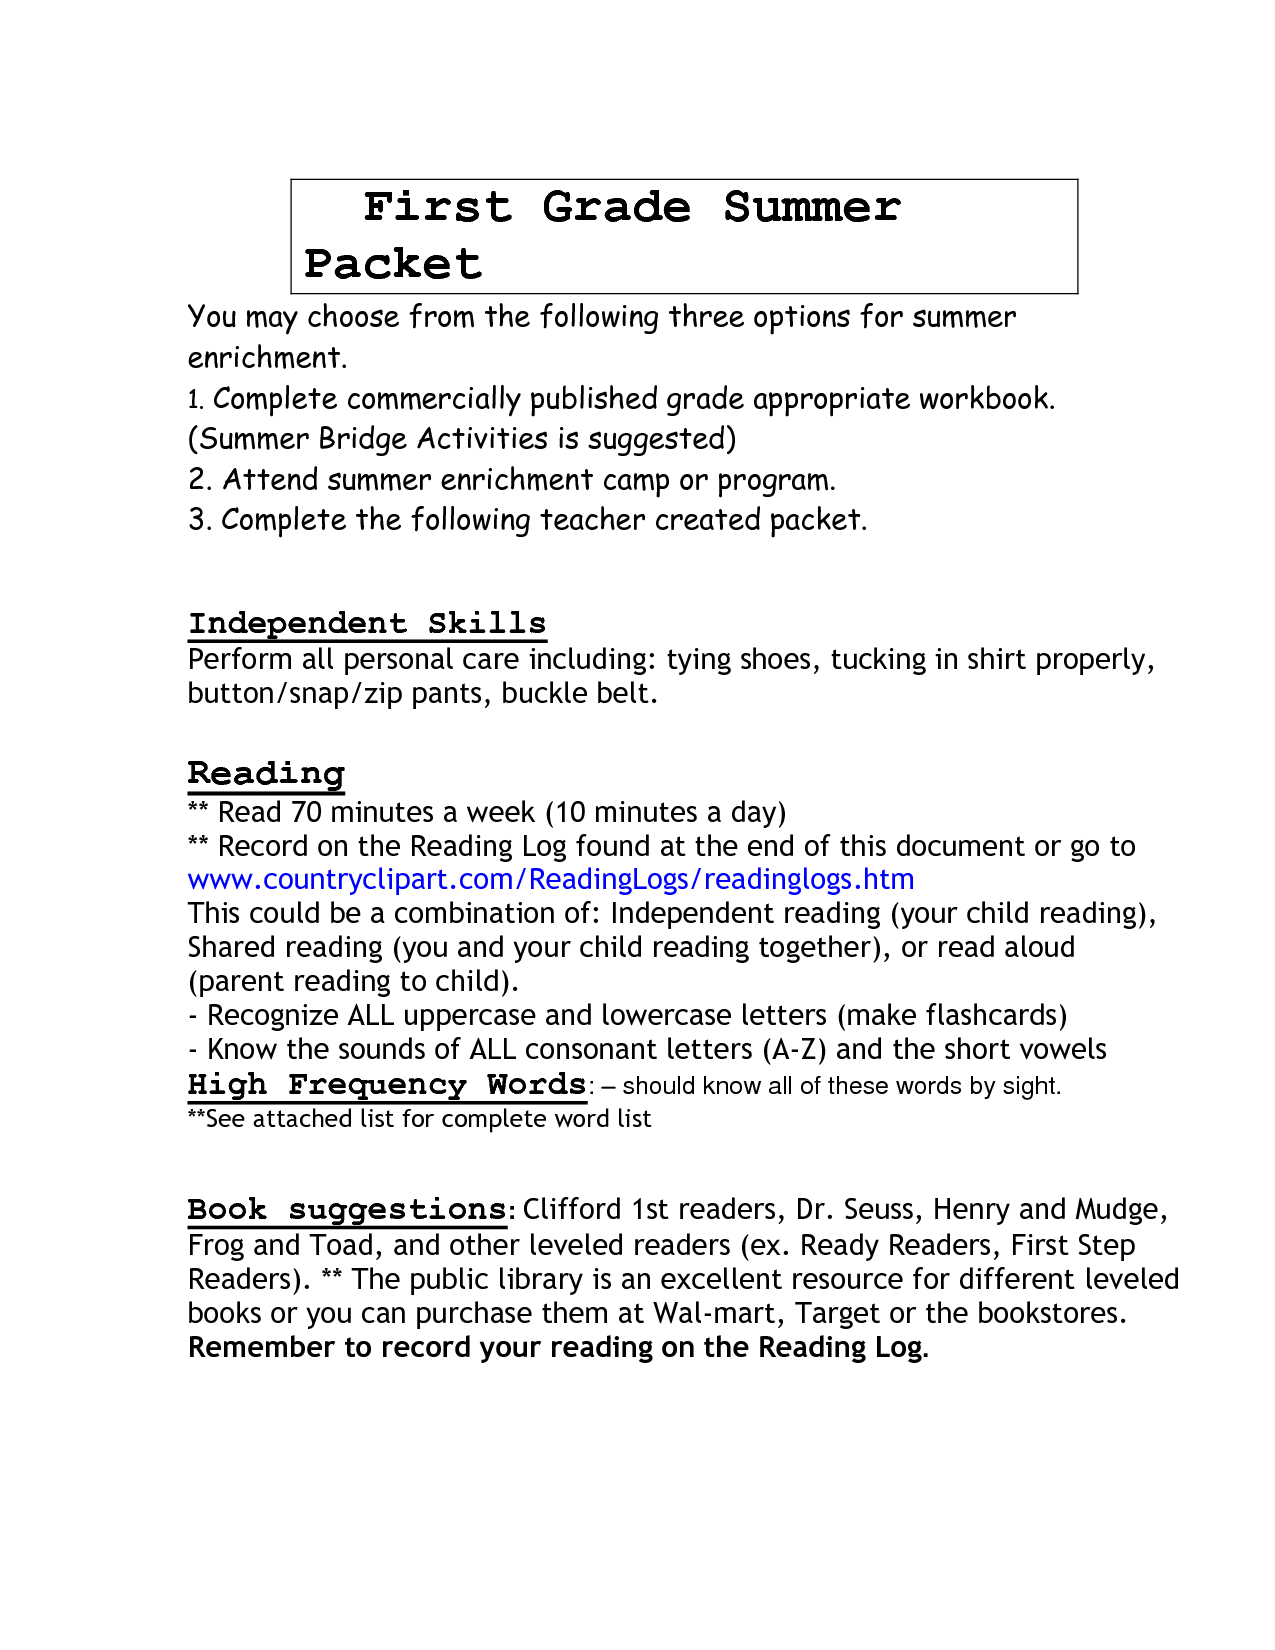 18 Best Images Of 1st Grade Reading Worksheets Packet